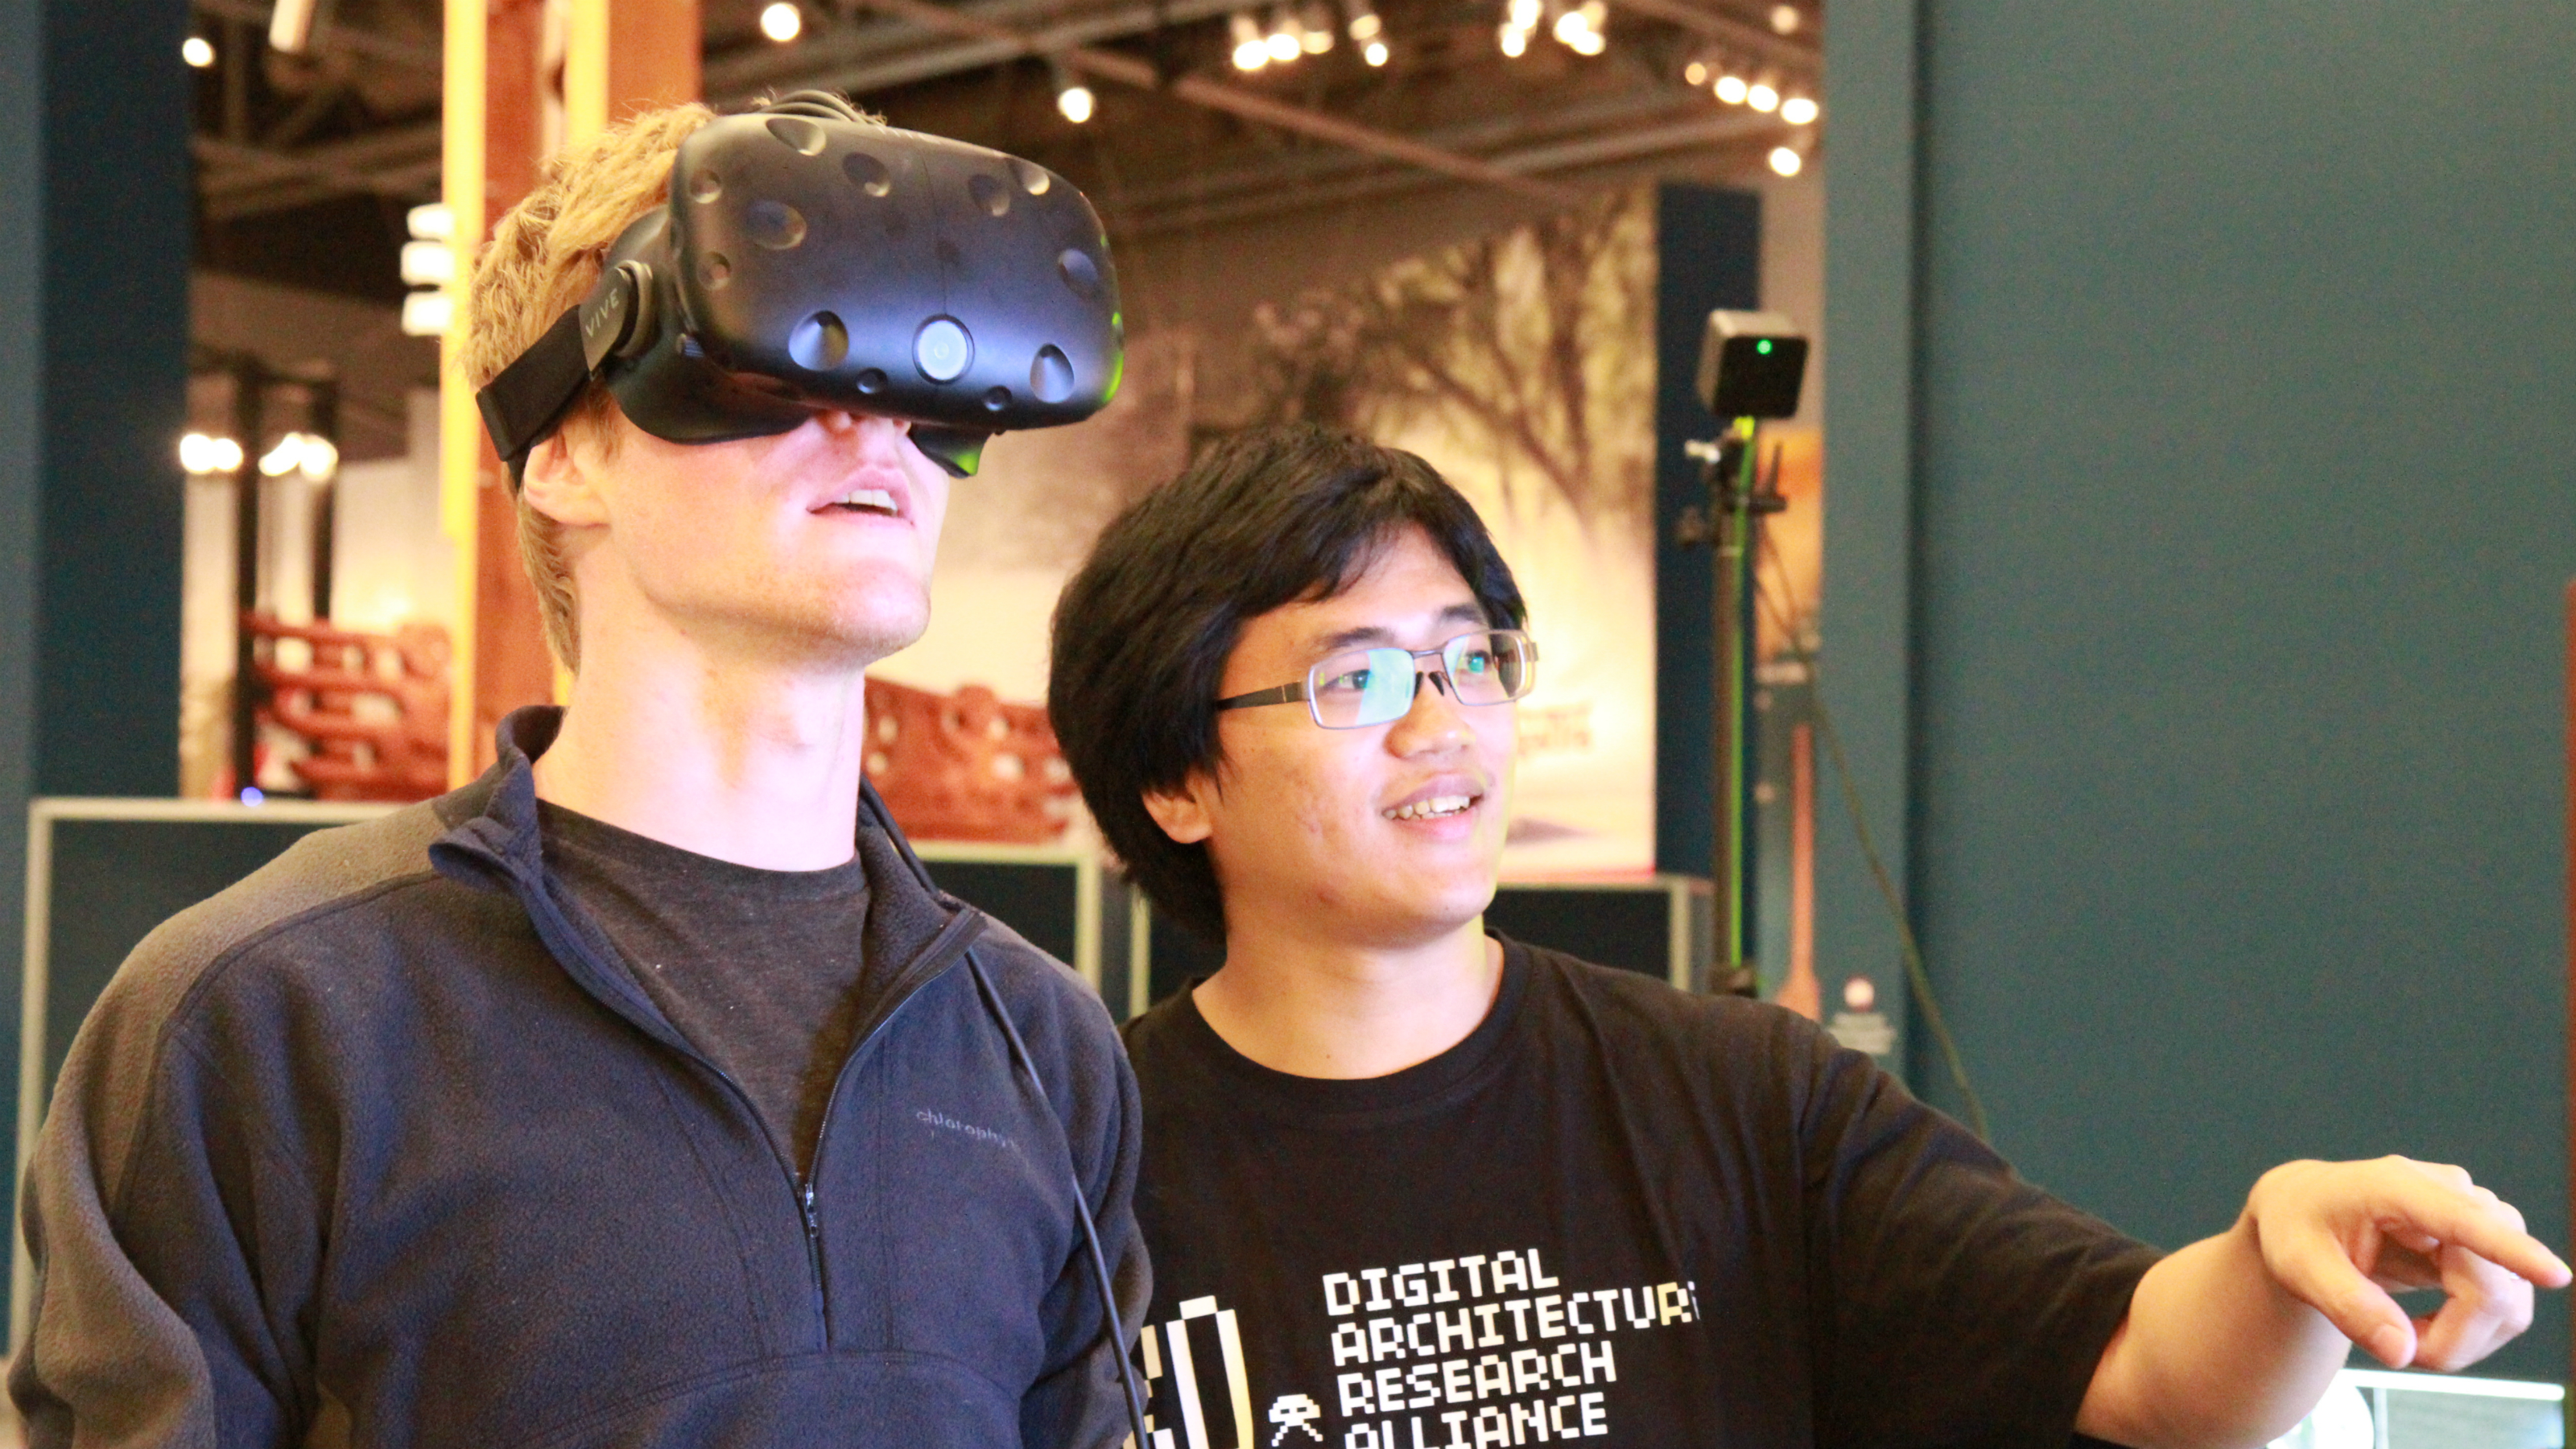 Architecture student Sky Lo talking a member of the public through what he is seeing through the VR headset